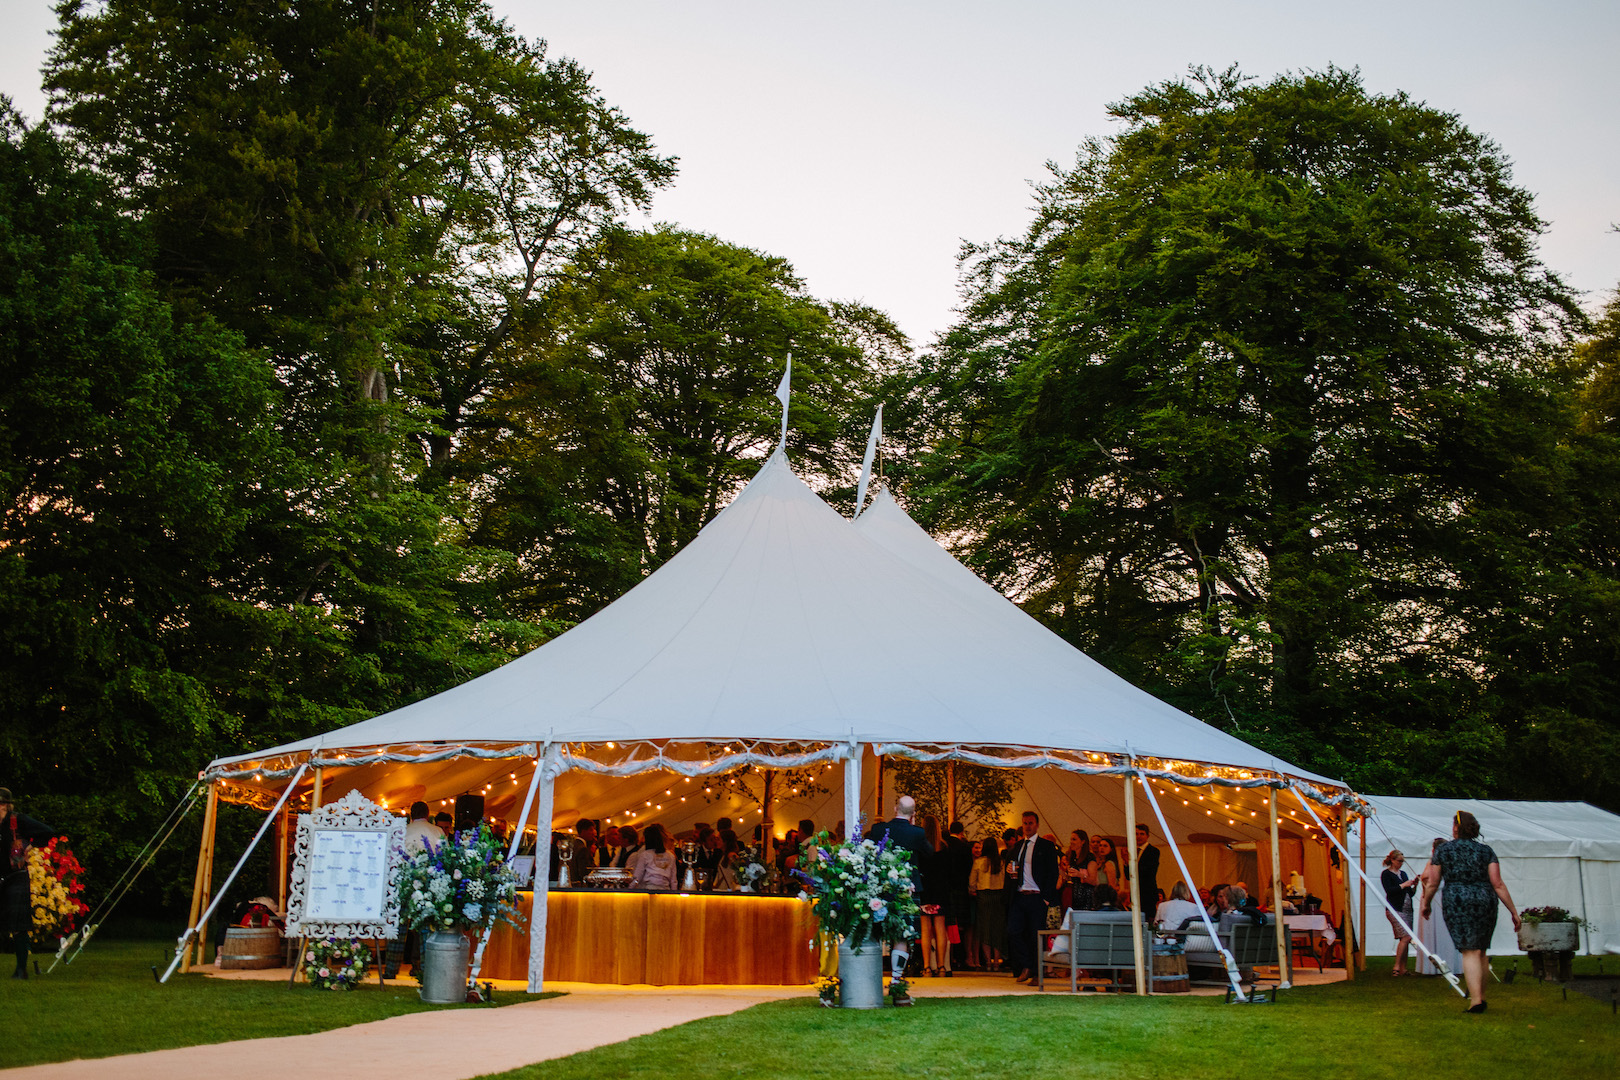 Alice & Alex's PapaKåta Sperry Wedding at Dunsinnan House, Scotland - Sperry Tent Exterior at Night captured by Eilidh Sutherland Photography